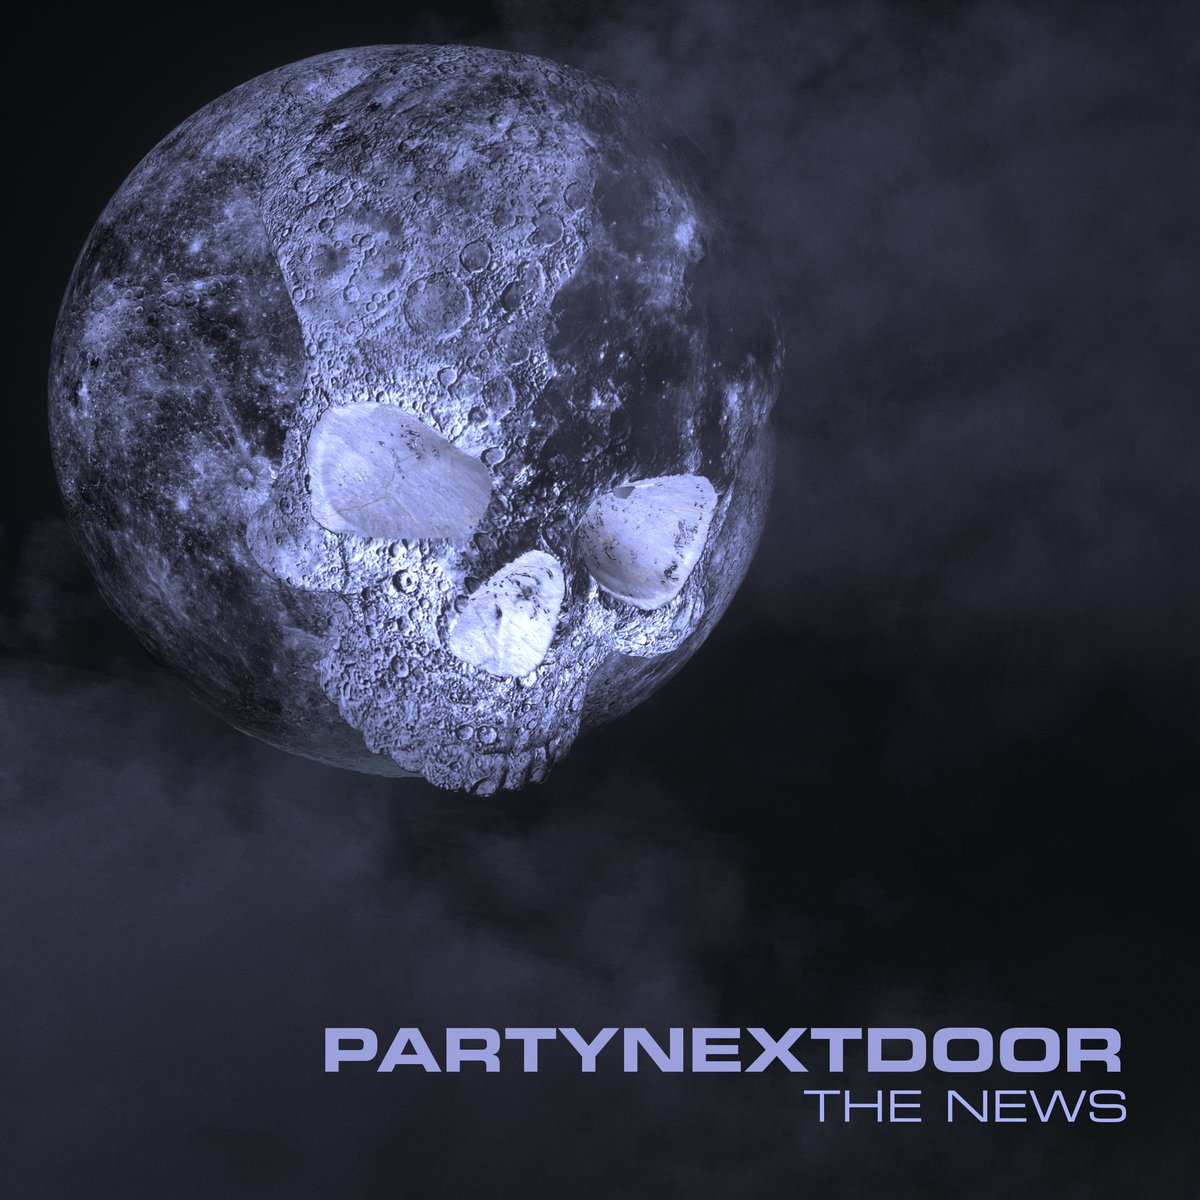 PARTYNEXTDOOR The News Lyrics